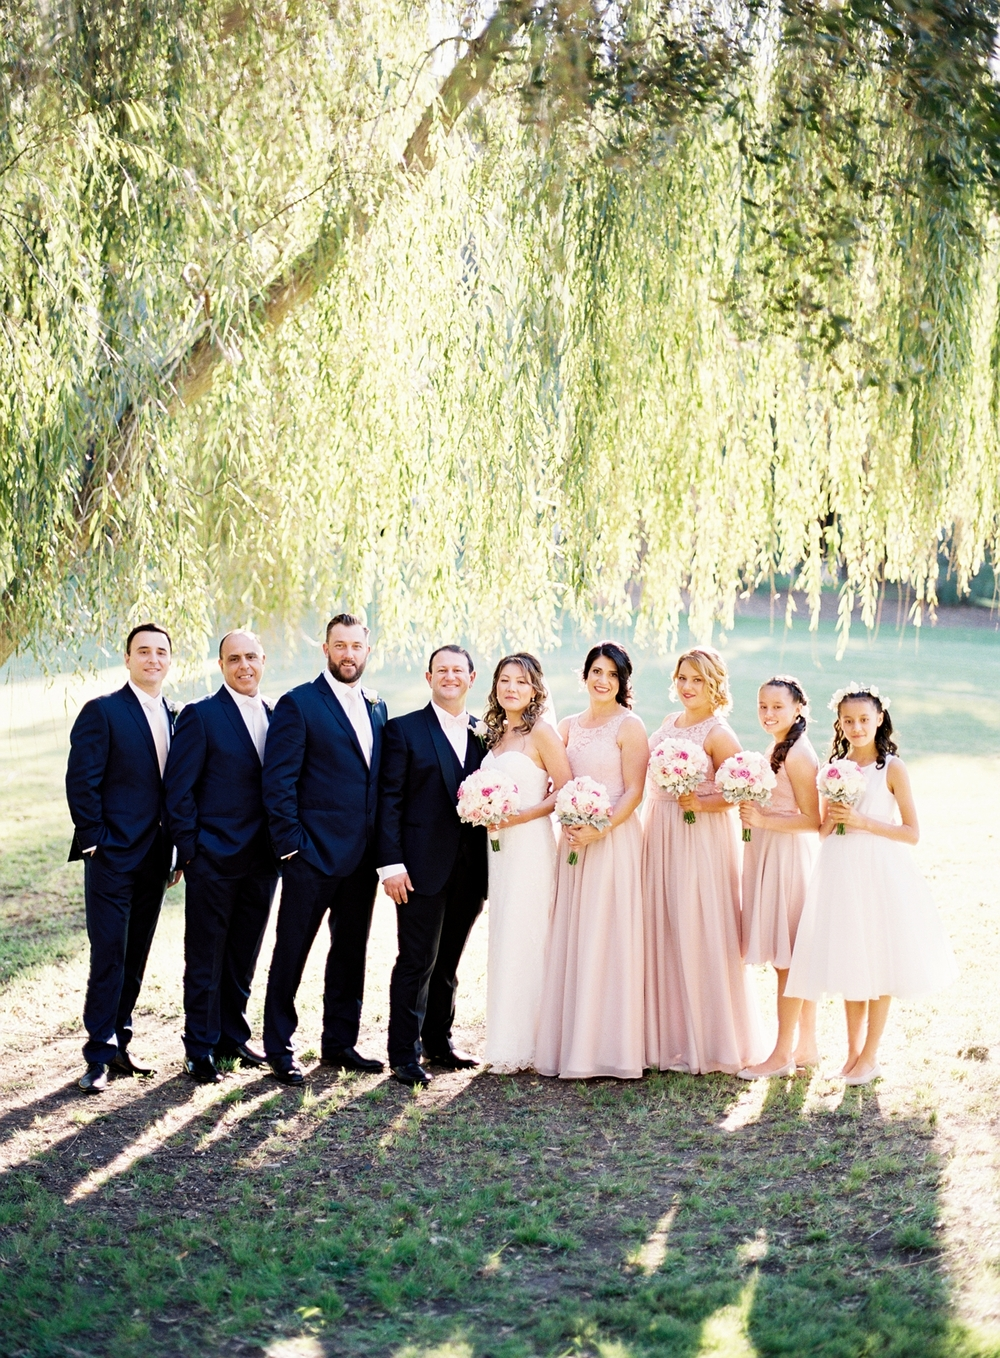 The Vine Grove Mudgee Wedding, Photography by Mr Edwards_1977.jpg